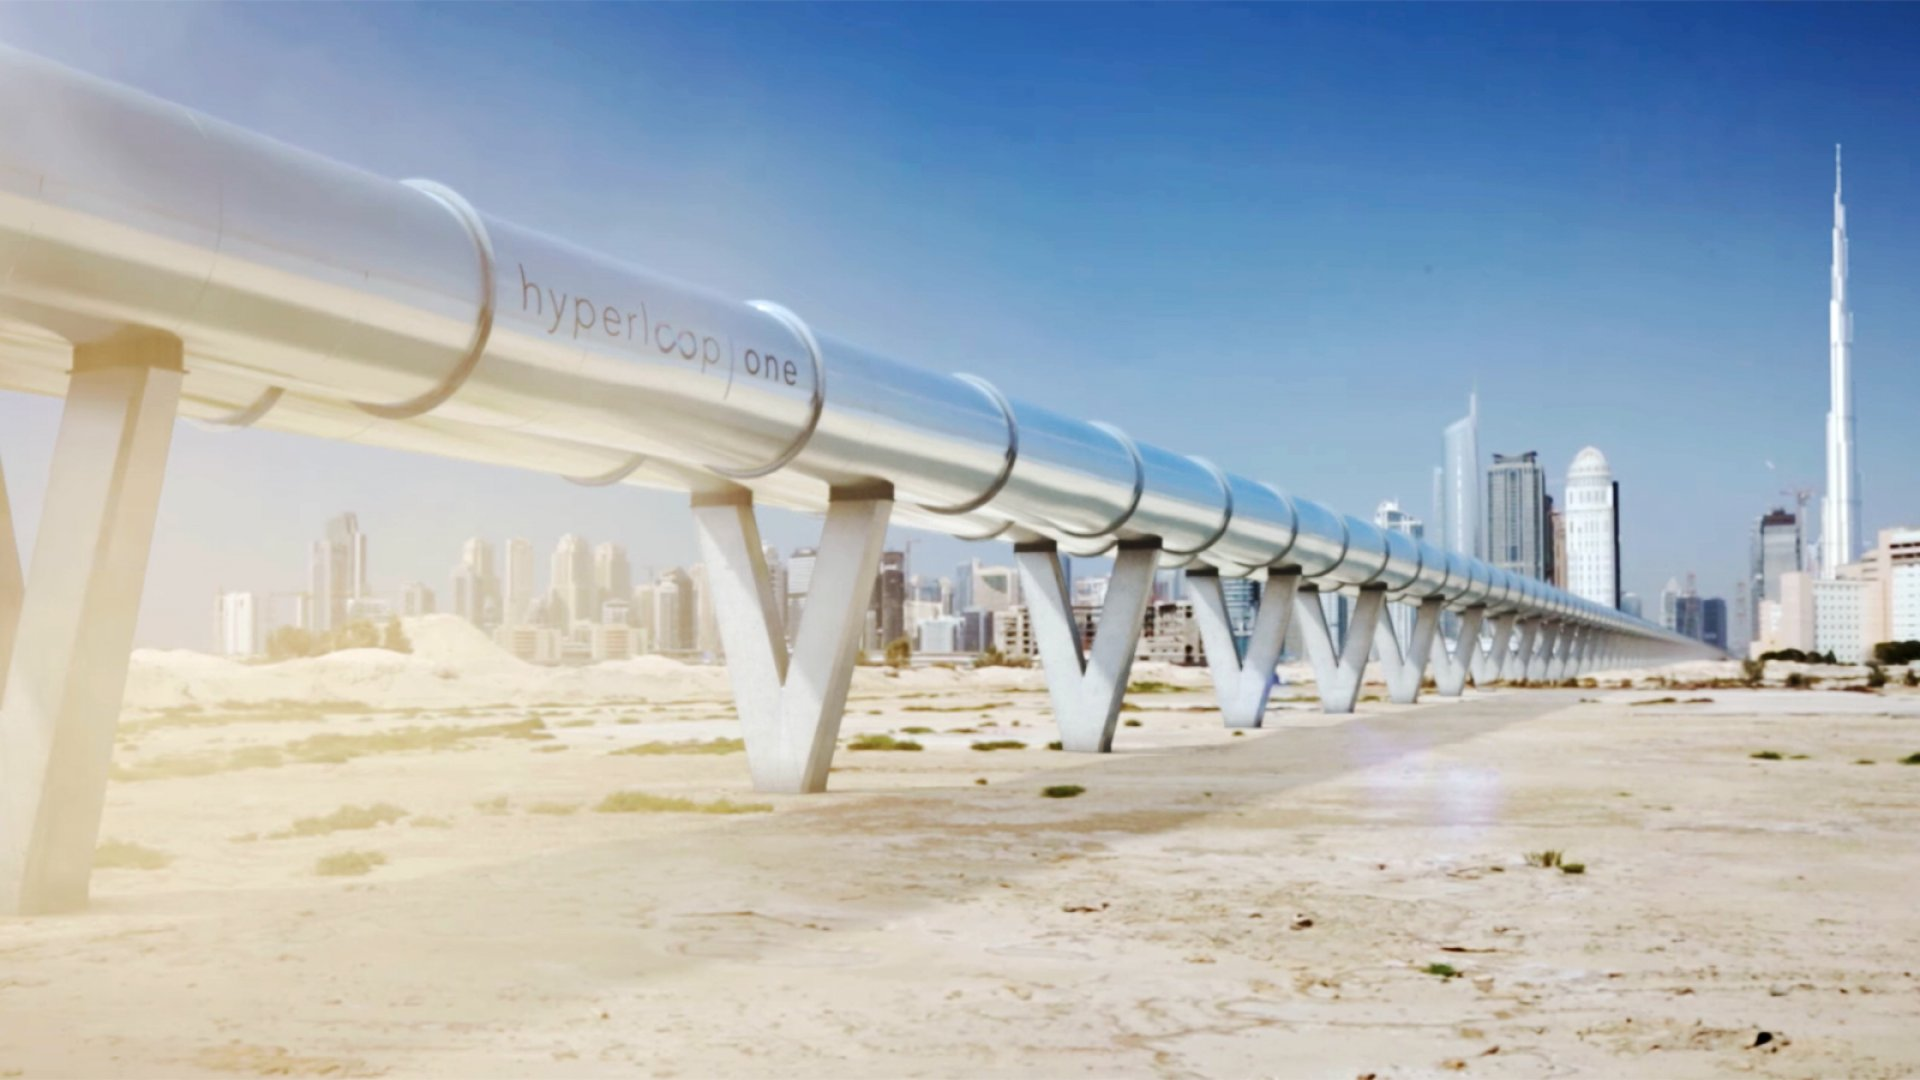 This Is the Hyperloop's Vision for Going 100 Miles in 12 Minutes